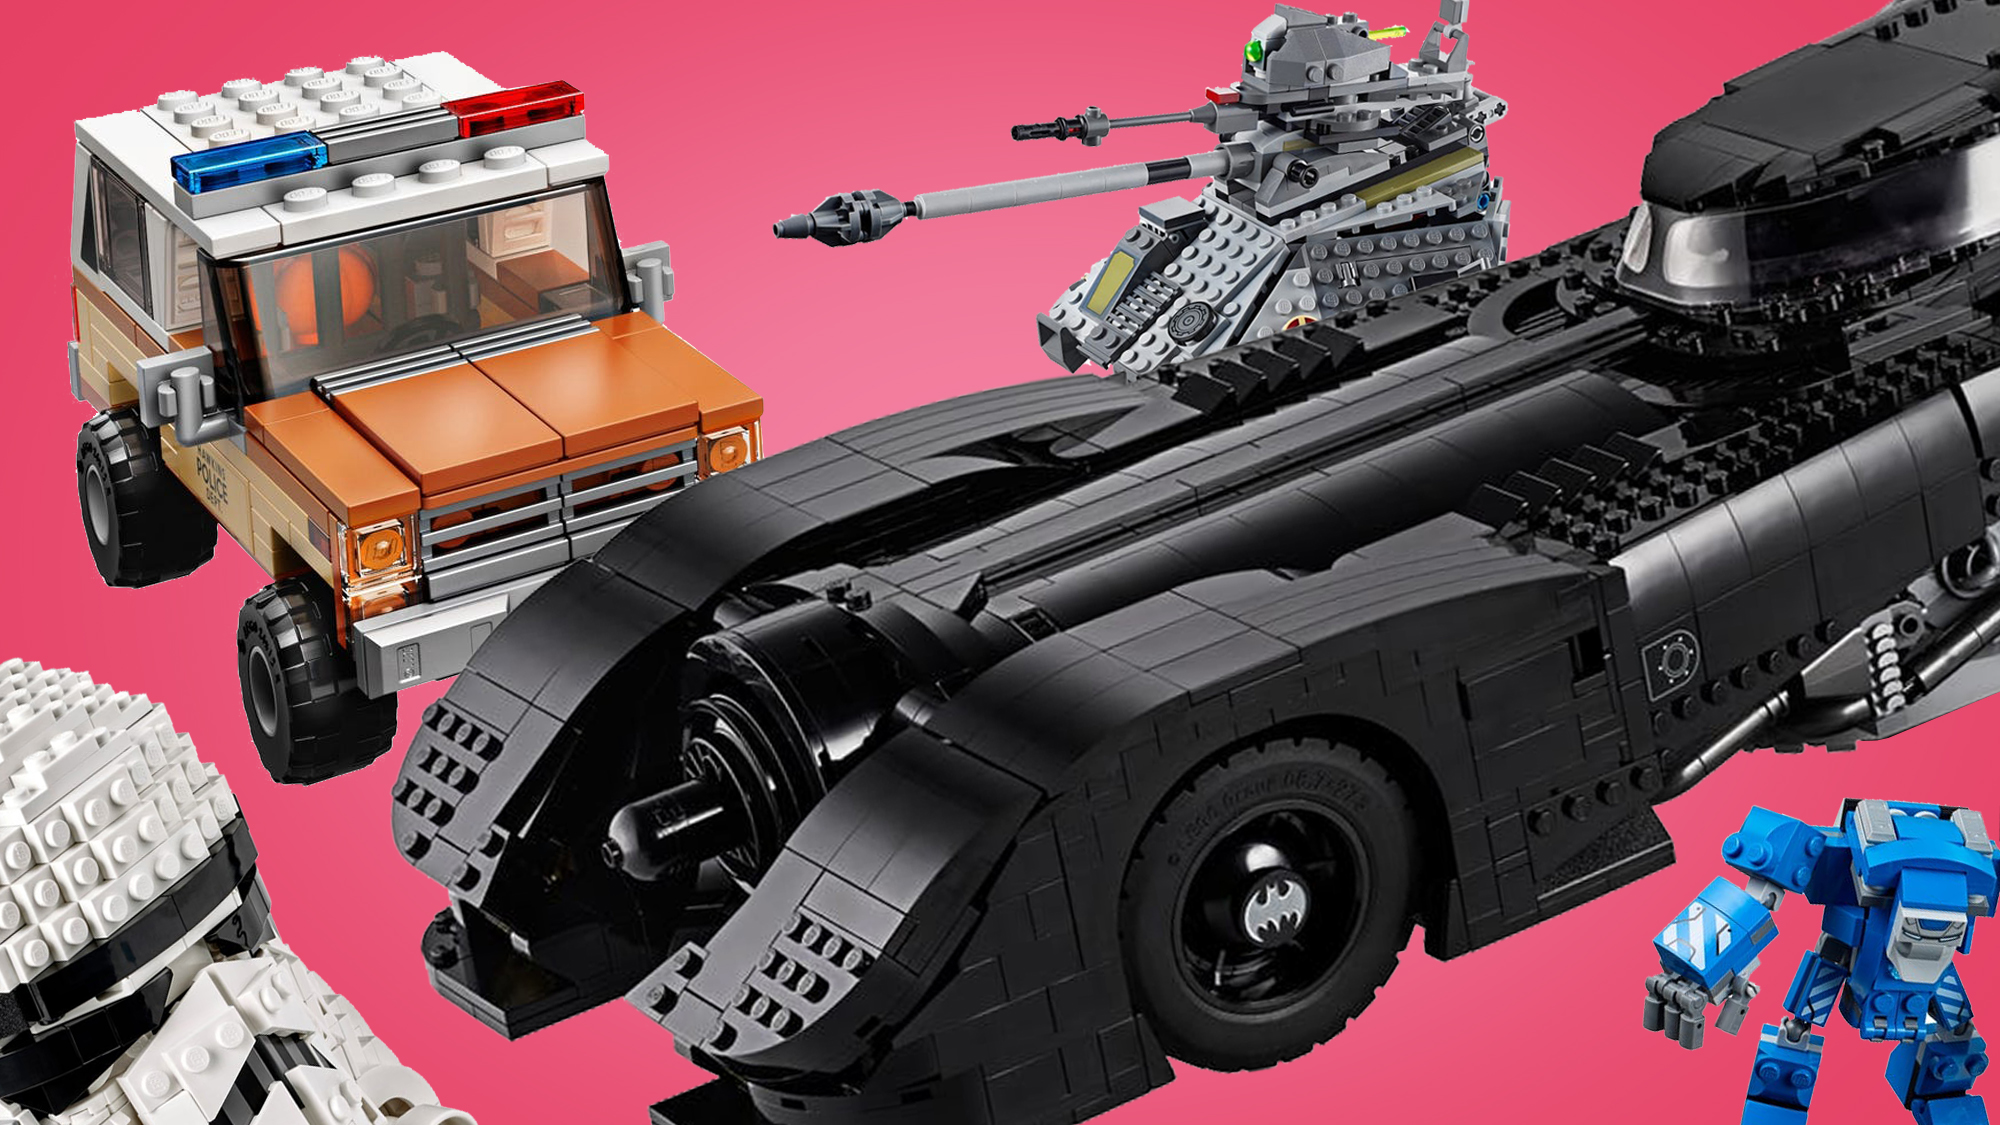 Best Lego Sets 2020 The Finest New Builds From Stranger Things To Batmobiles Techradar